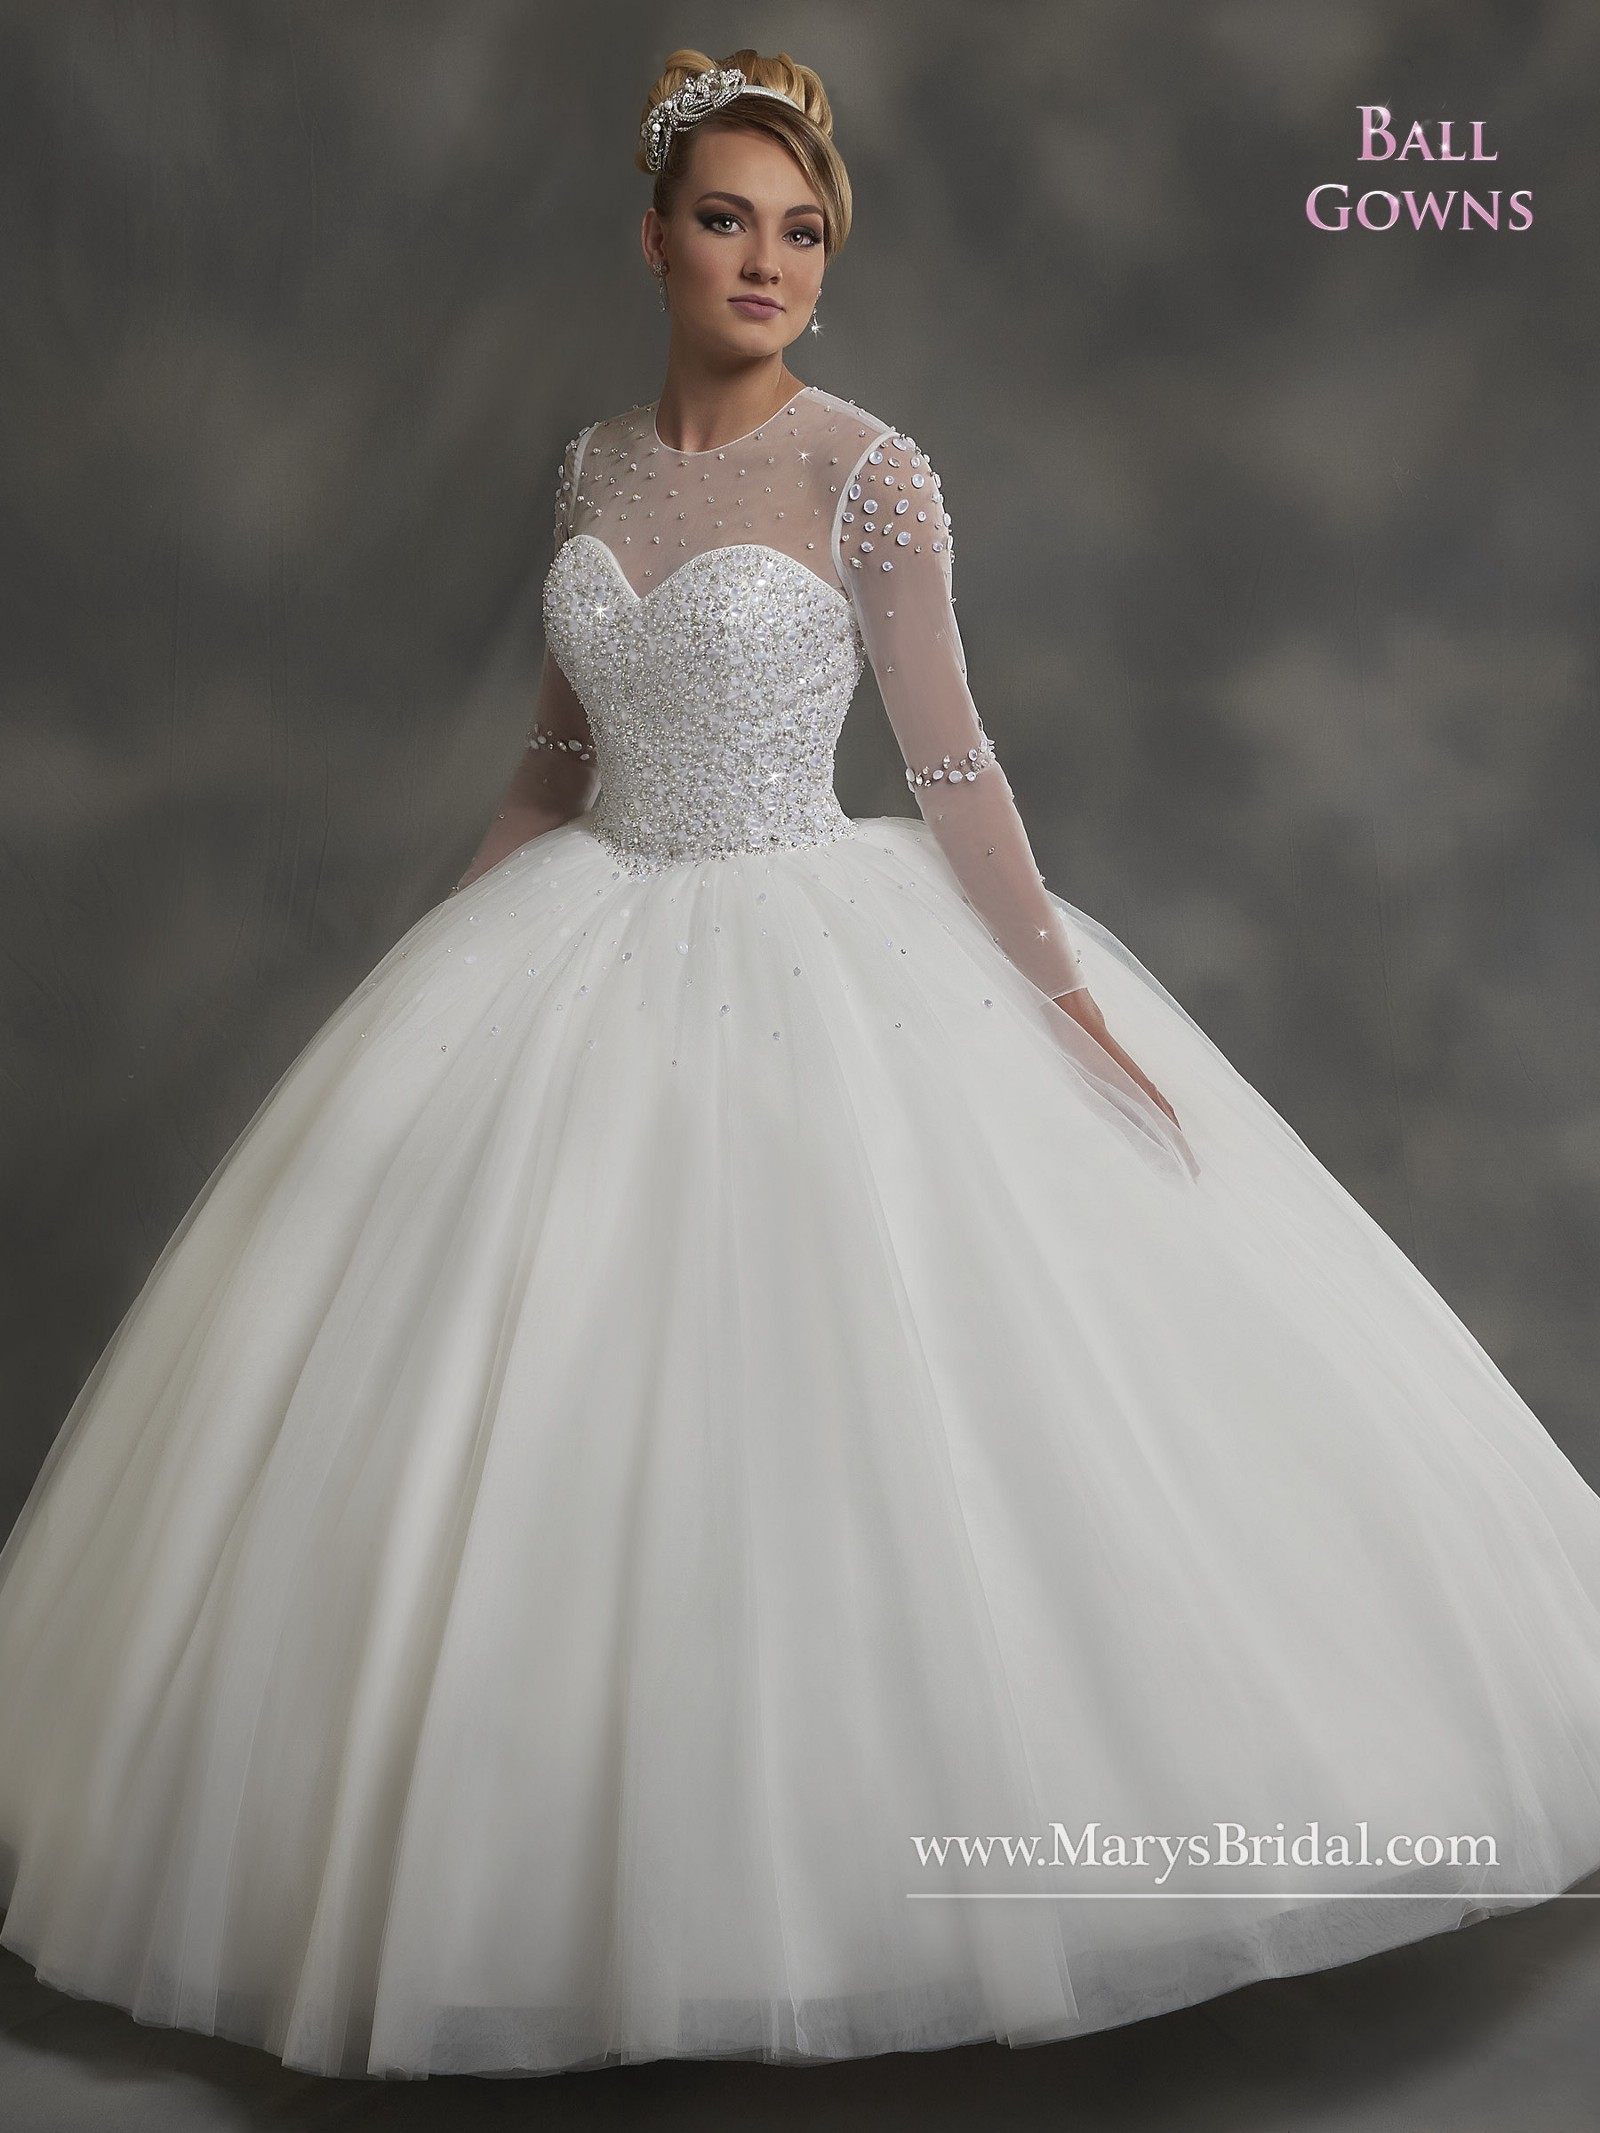 Stunning and fine-looking Wedding ball gowns in silky tulle